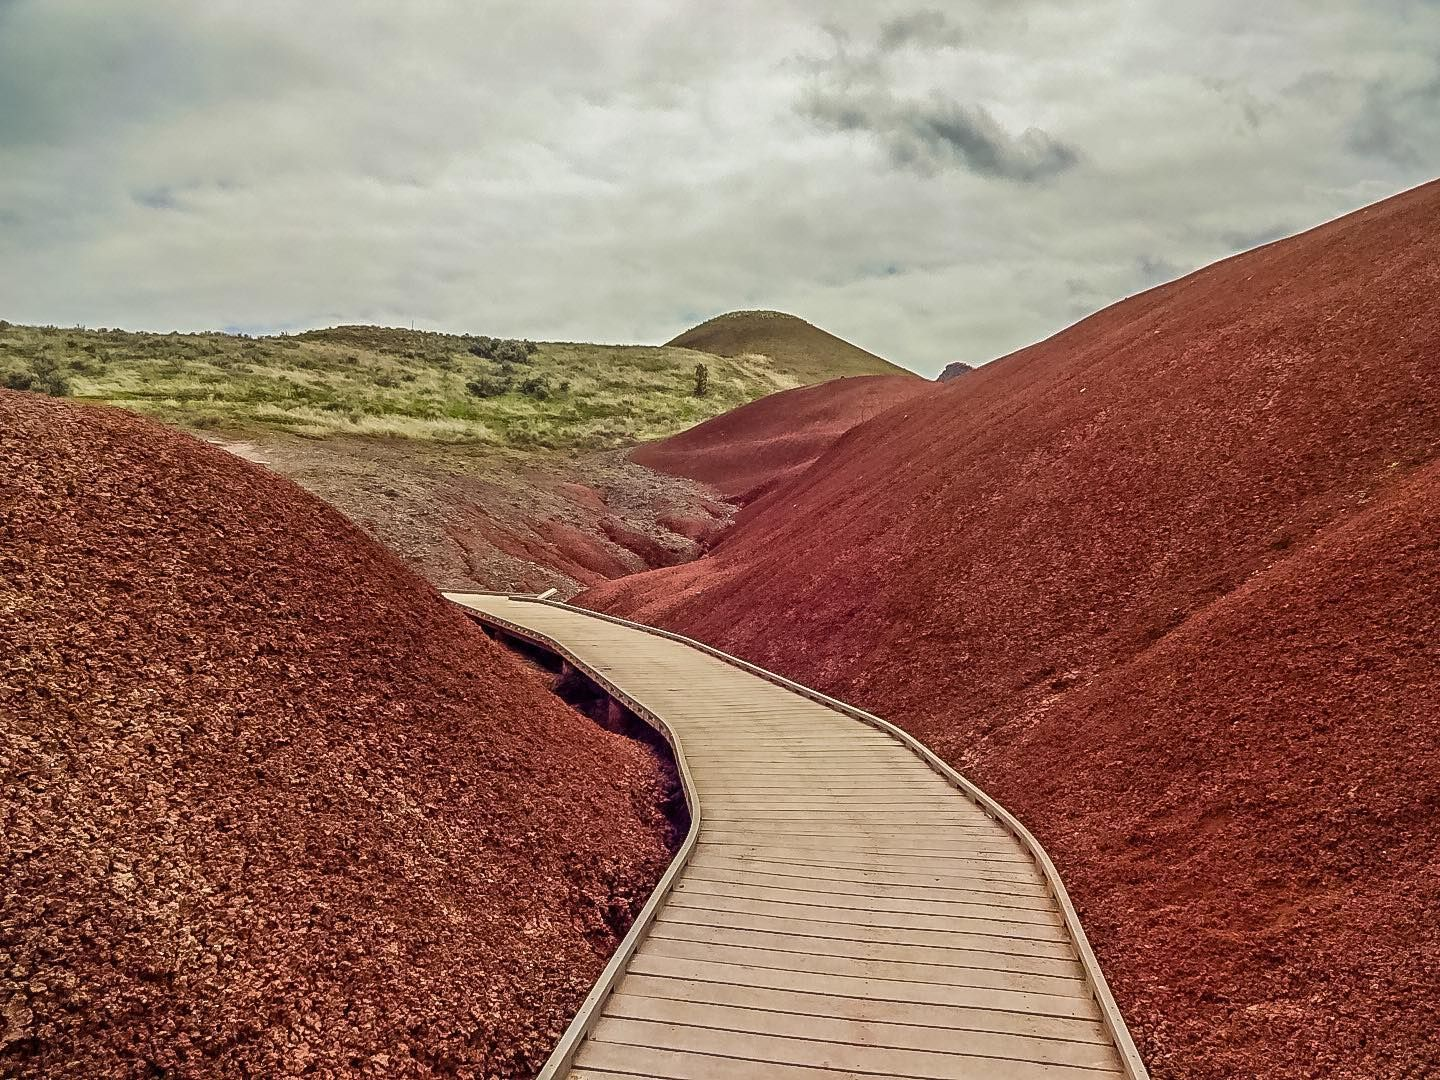 Painted Hills | Oregon | USA. . . . .  #nature_brilliance #EarthVisuals #artofvisuals #welivetoexplore #natureaddict #naturediversity #ourplanetdaily #earth_deluxe #naturephoto #main_vision #landscape_captures #awesome_earthpix #natureaddict #rsa_rural #awesomeearth  #iphoneography #iphoneonly #iphonesia #iphoneography #tbt #mitchell #paintedhills #upperleftusa #oregon #oregonexplored